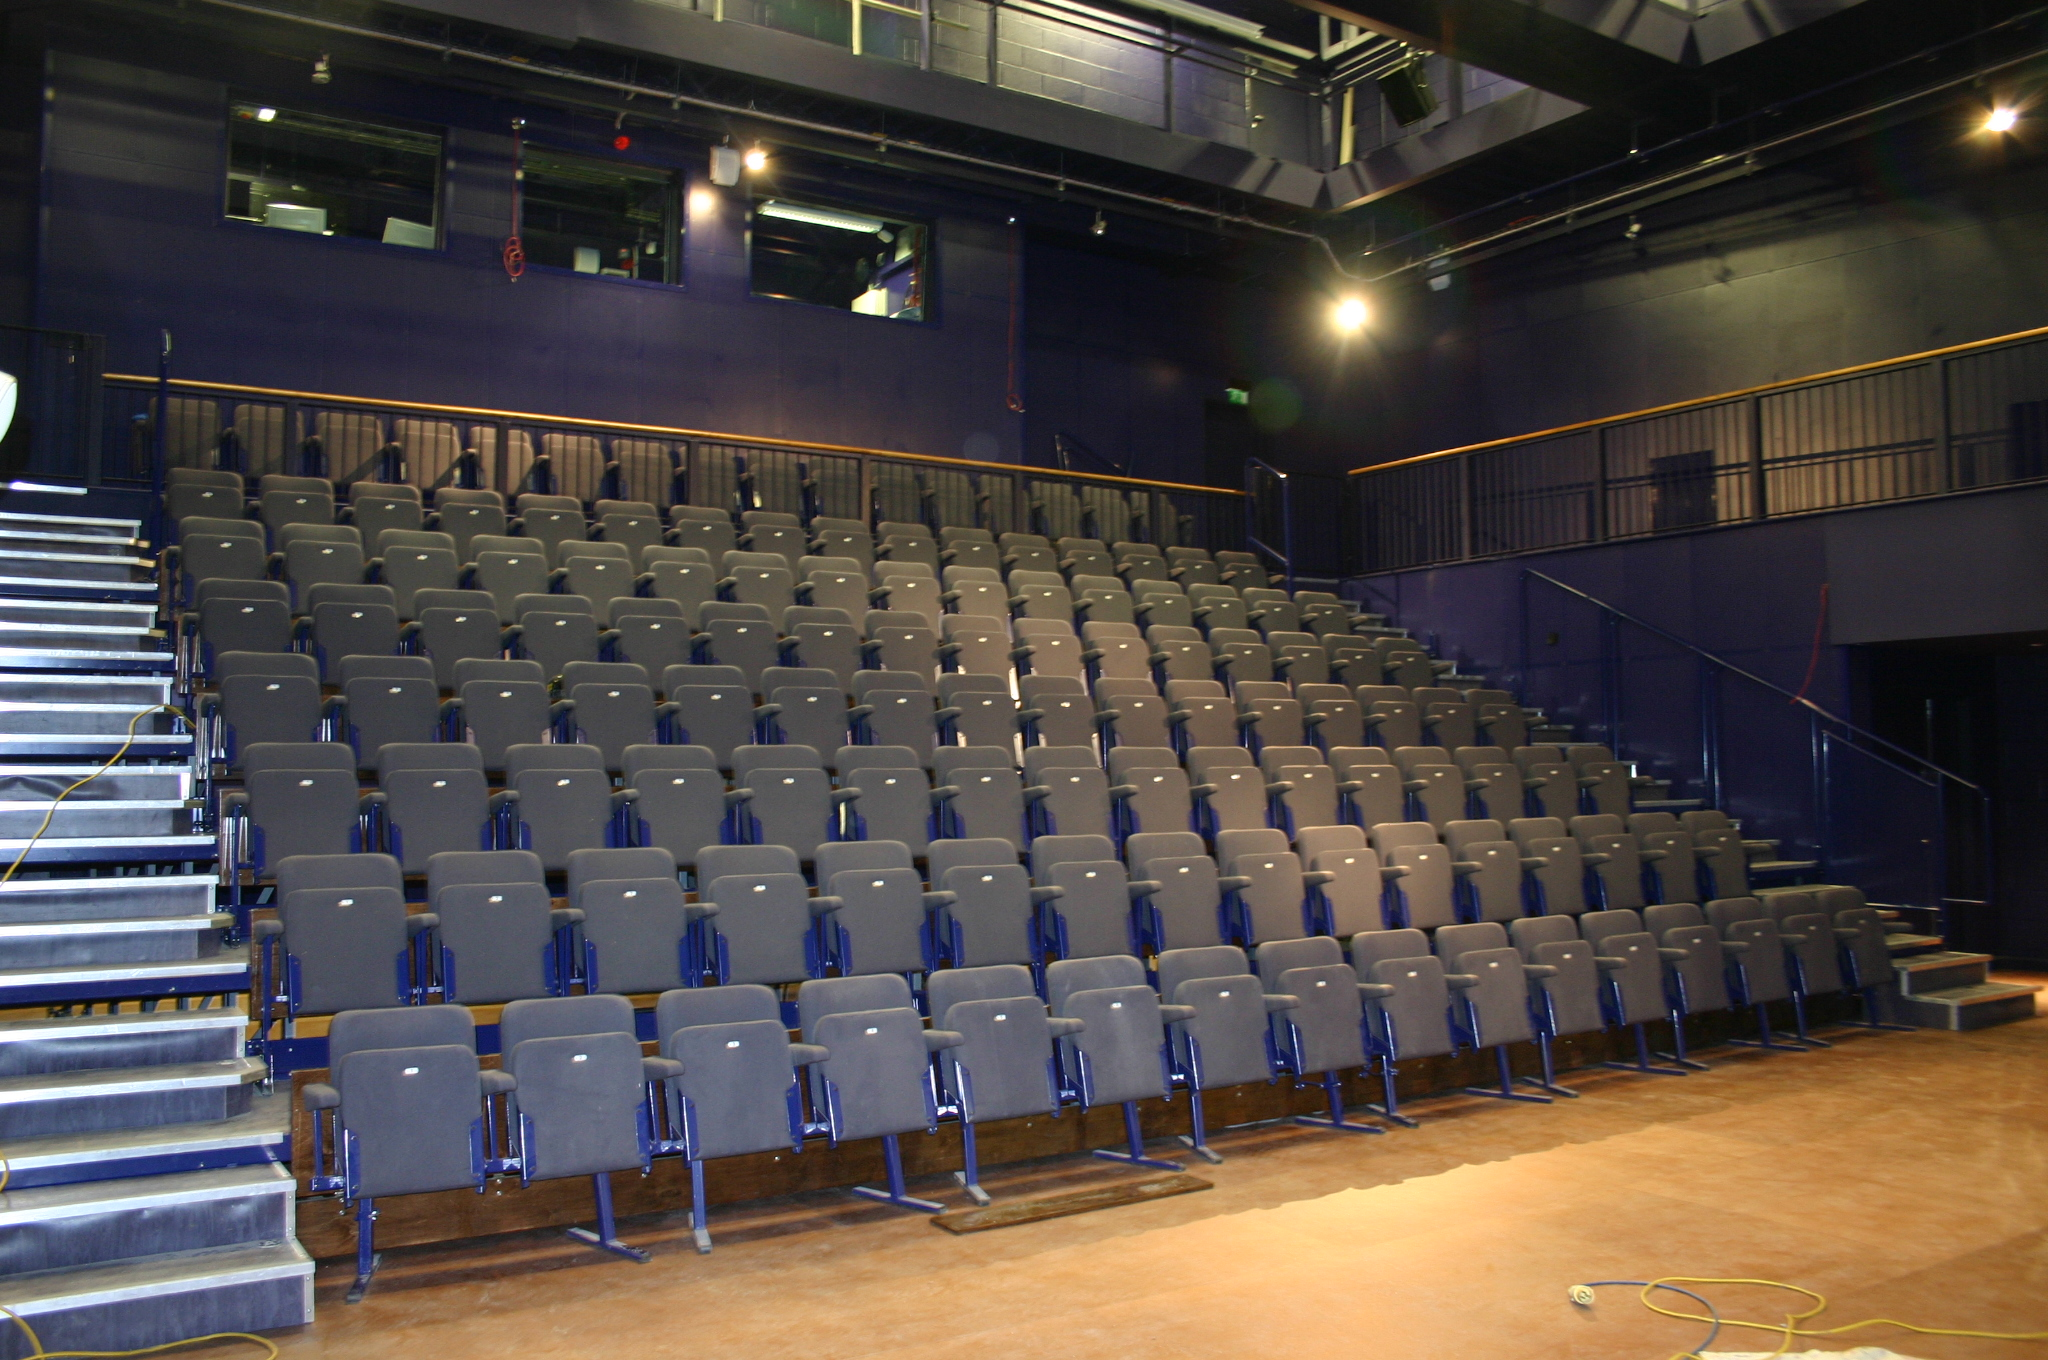 Tiered seating in the studio theatre